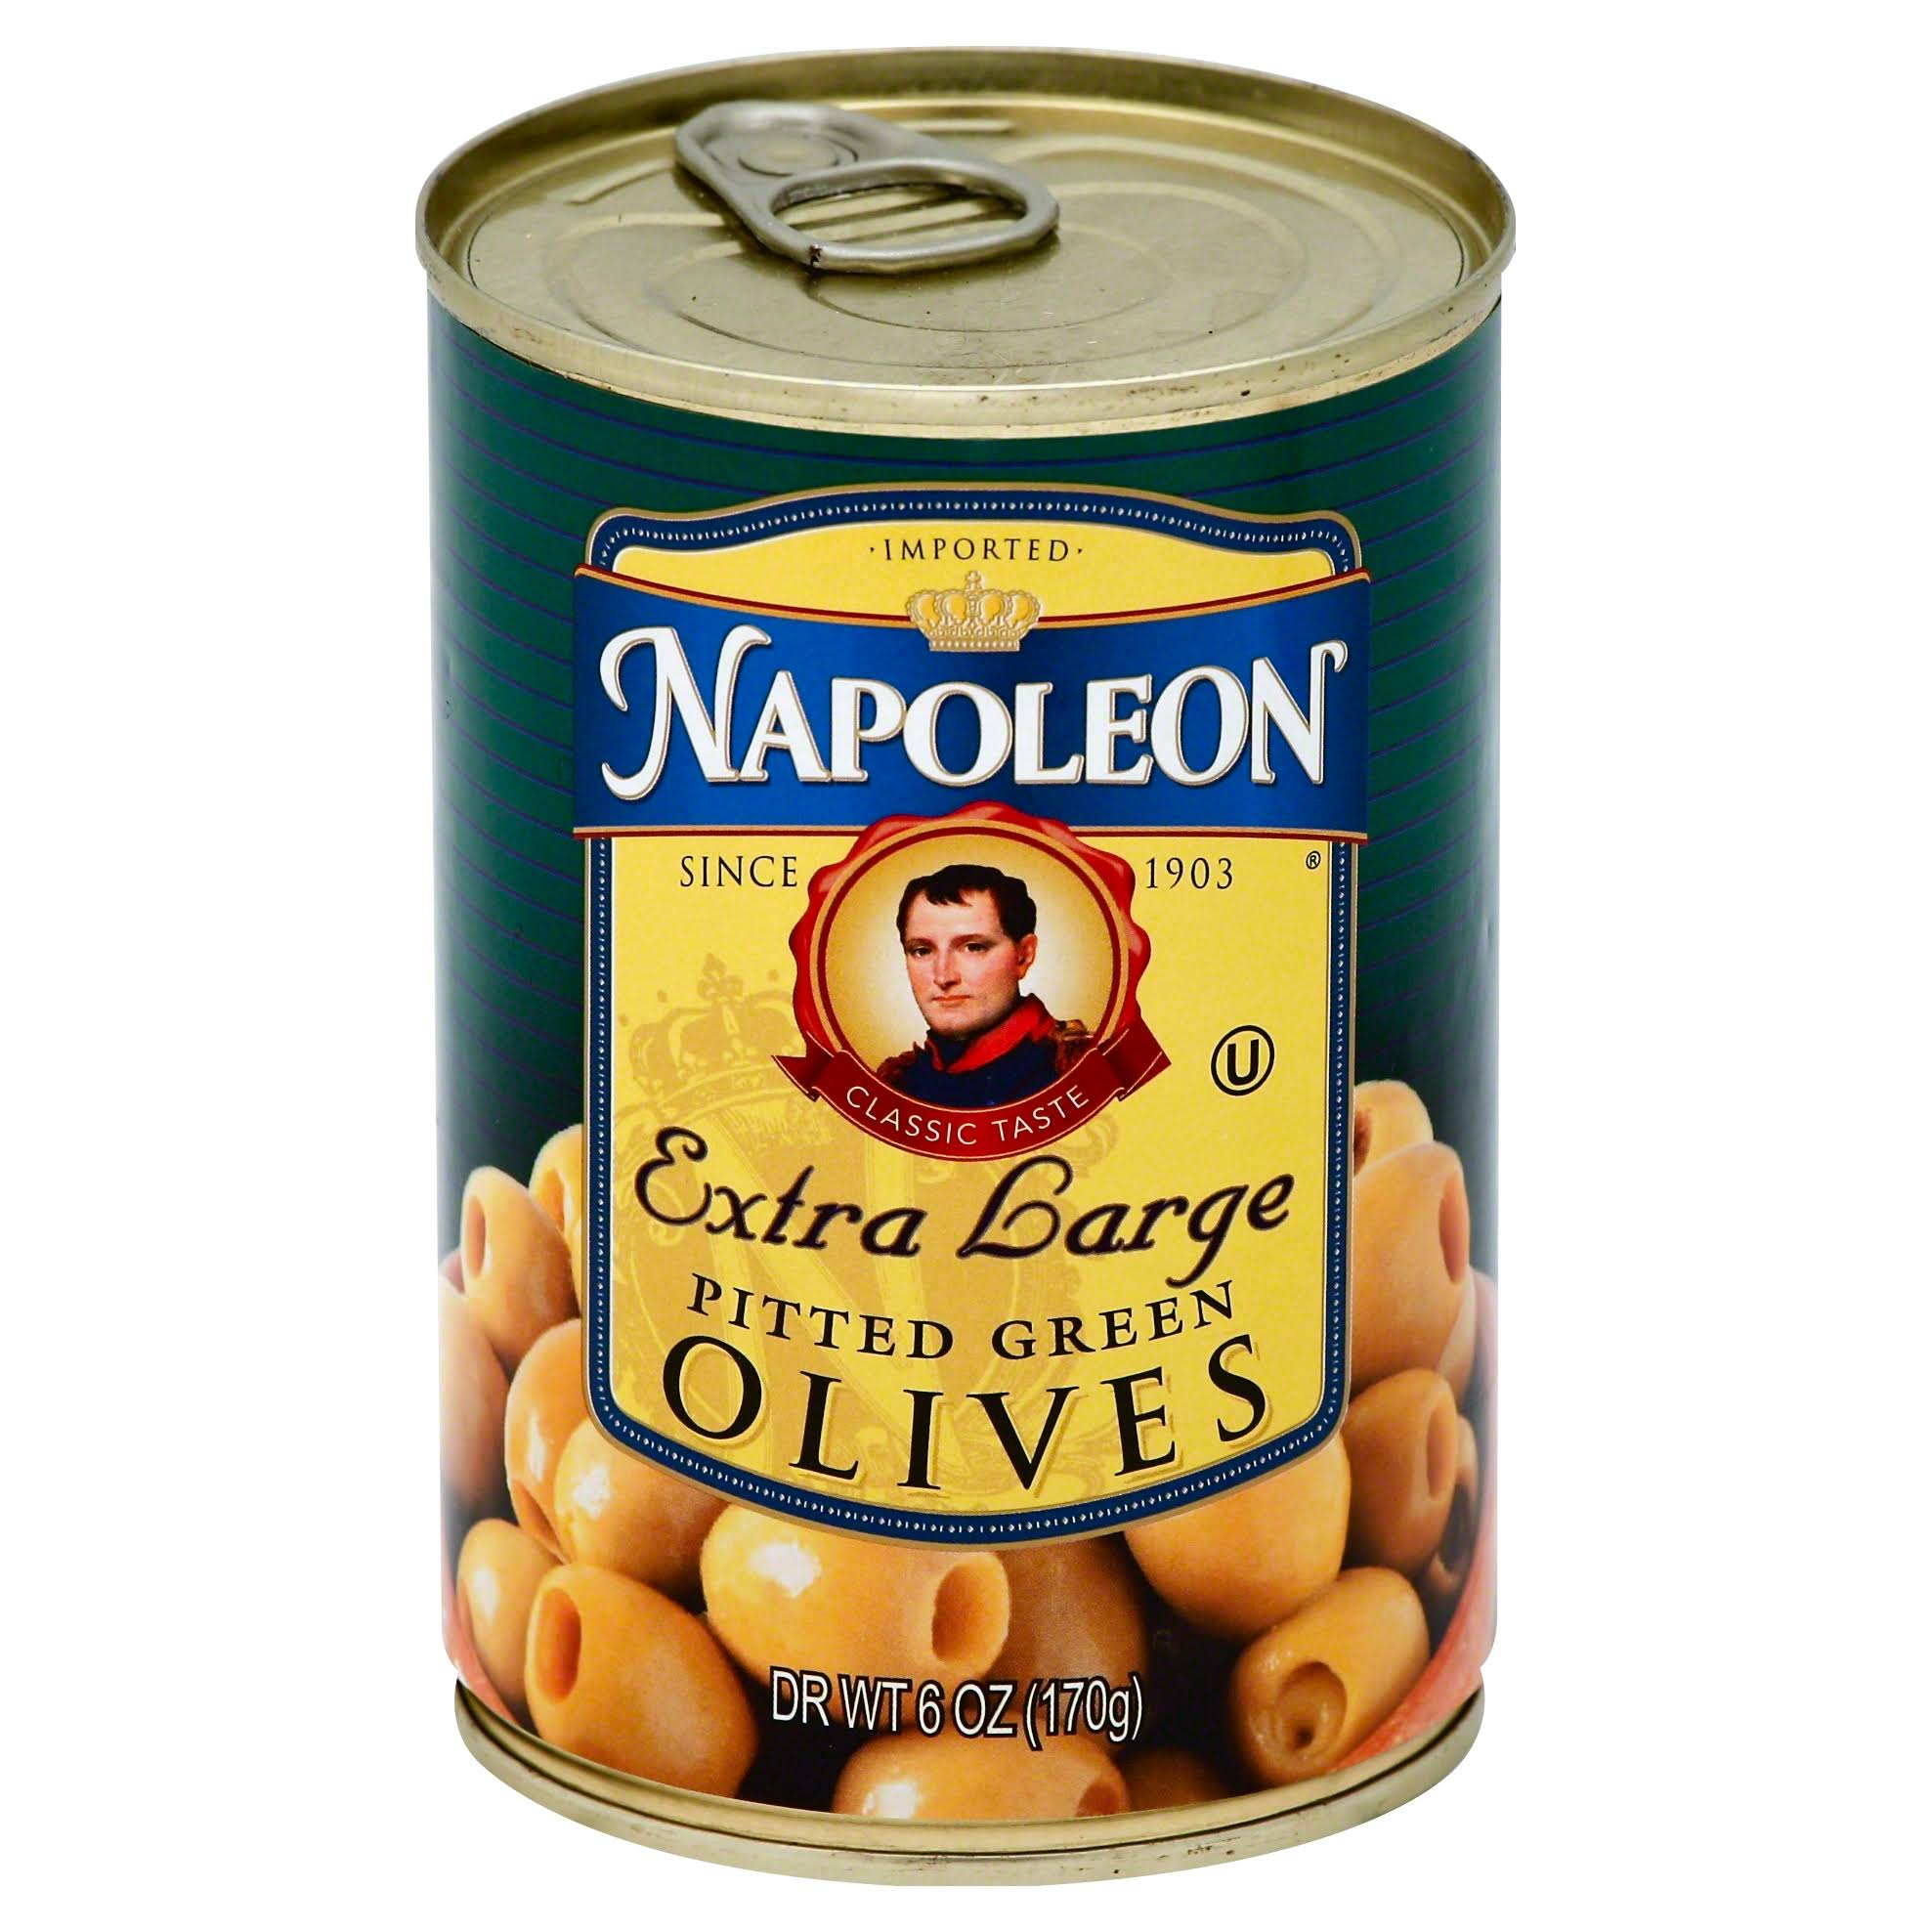 Napoleon Extra Large Pitted Green Olives - 6 oz